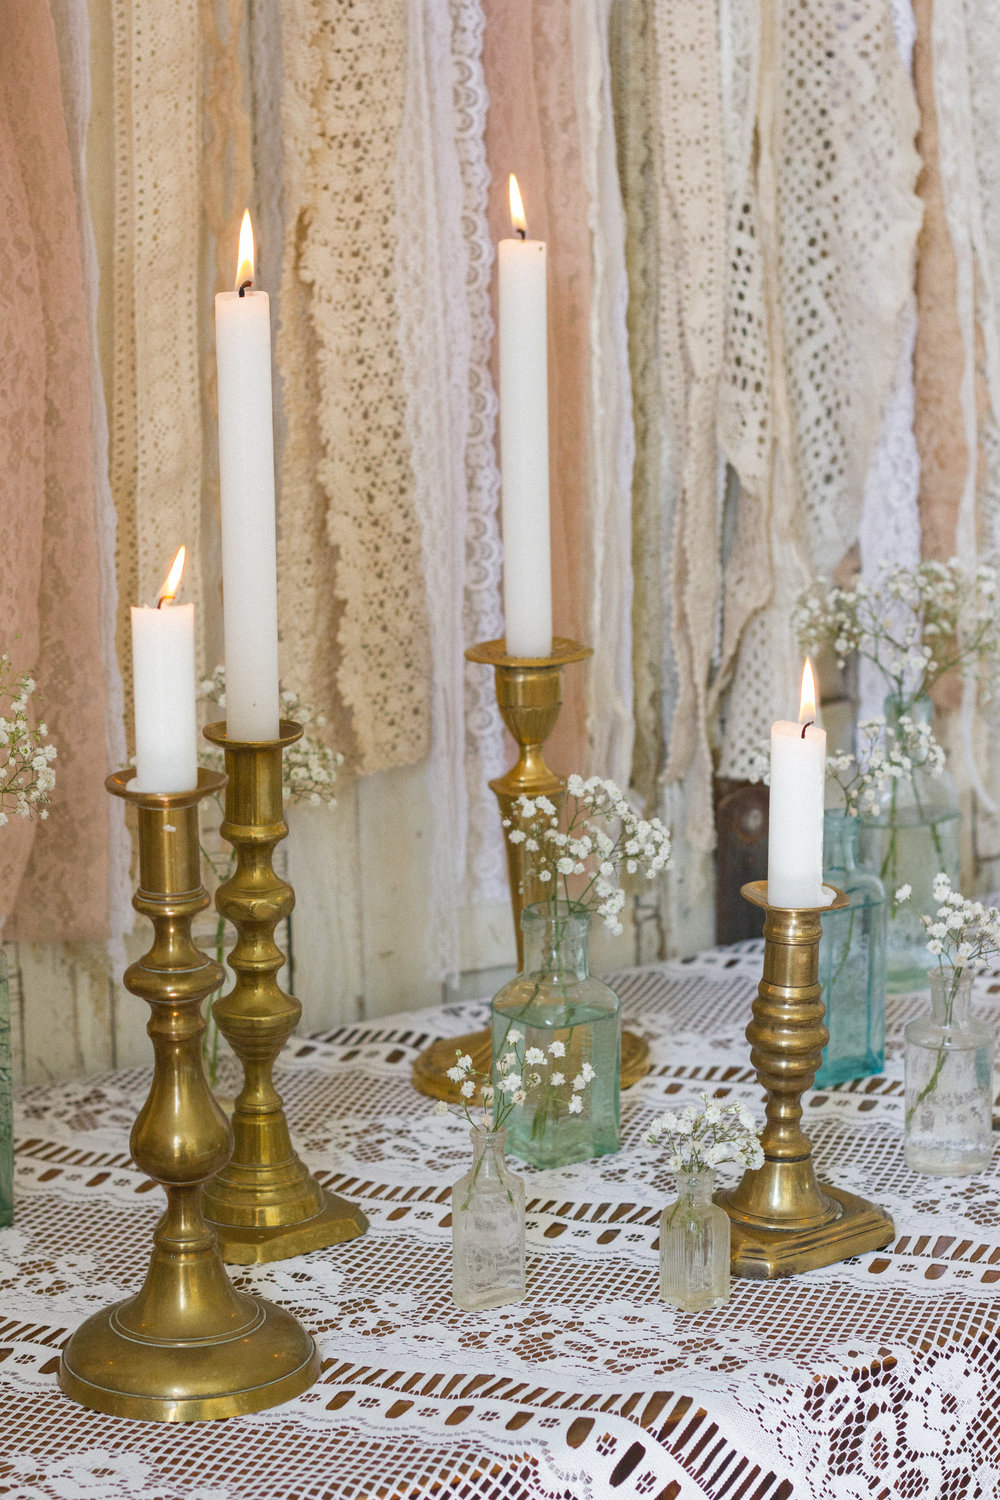 Brass candlesticks on lace is so pretty.